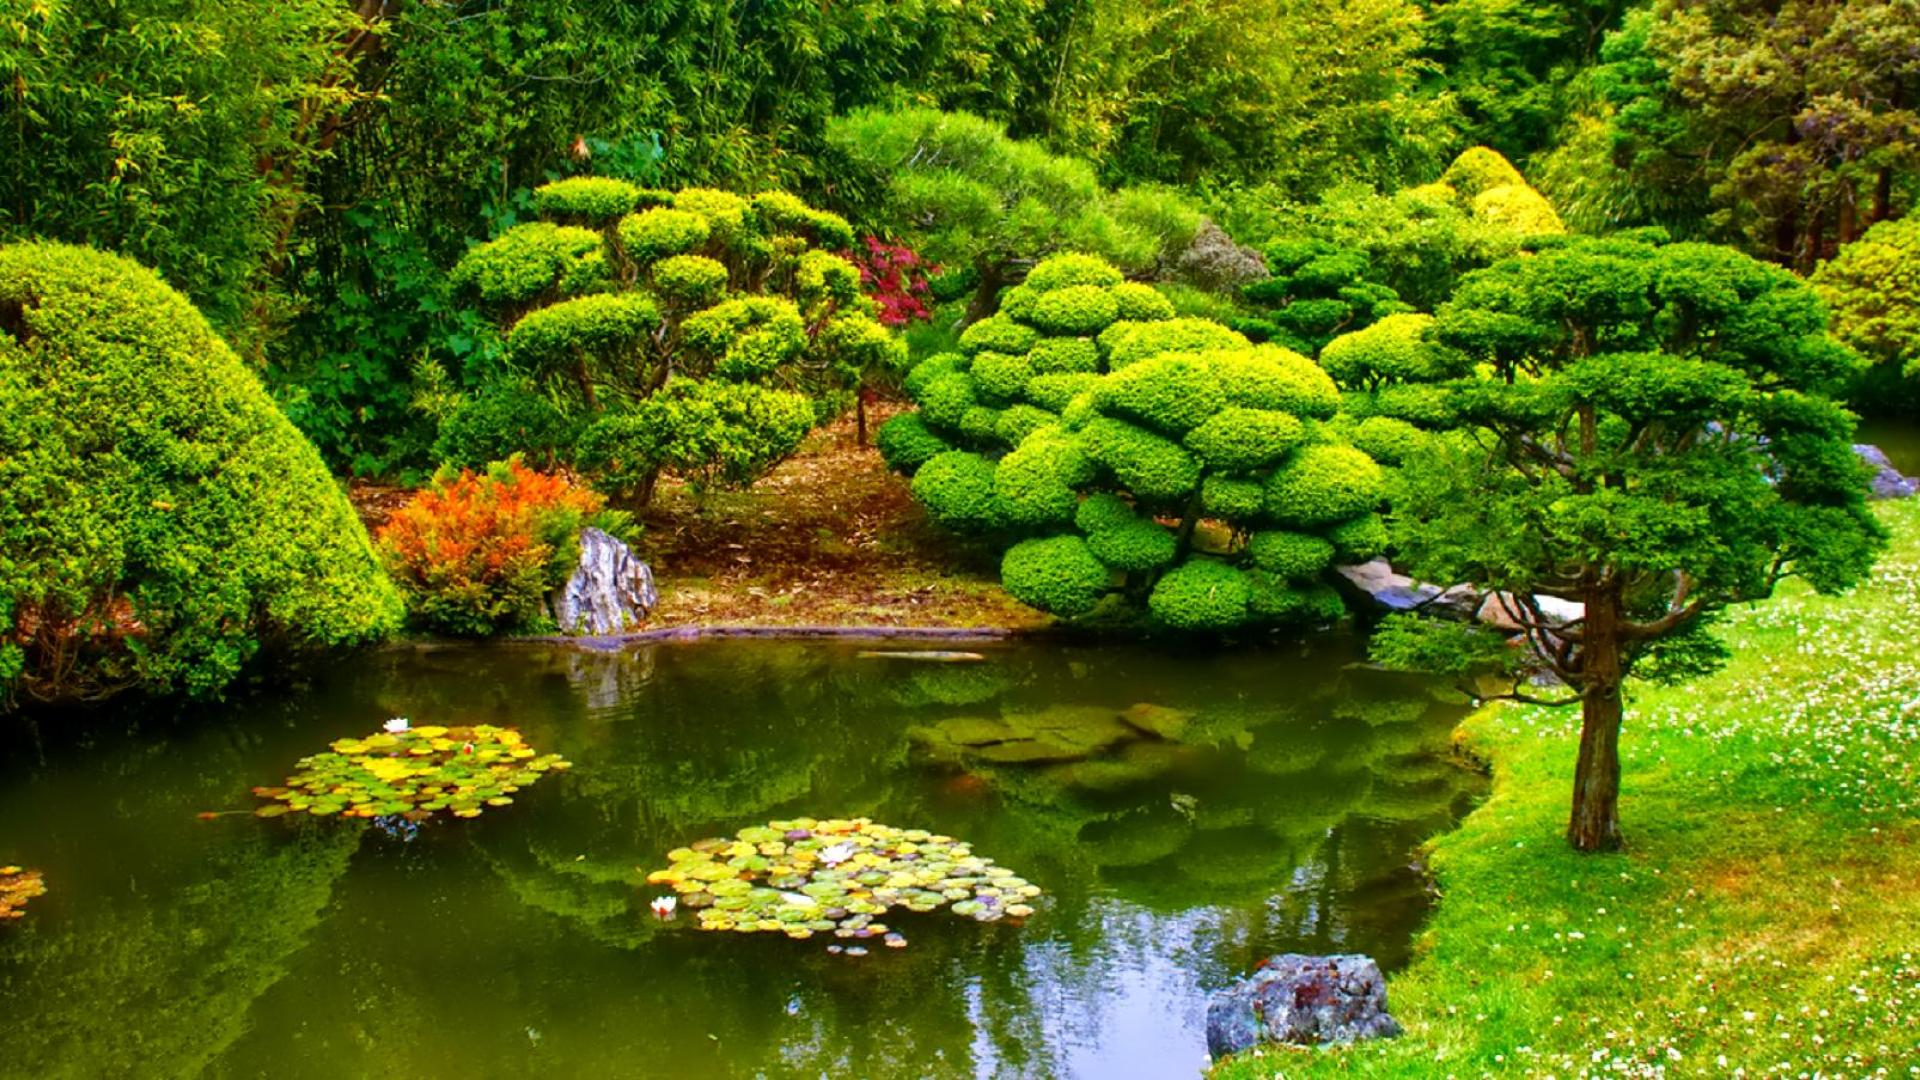 Japanese Garden Wallpapers: Japanese Garden Wallpaper